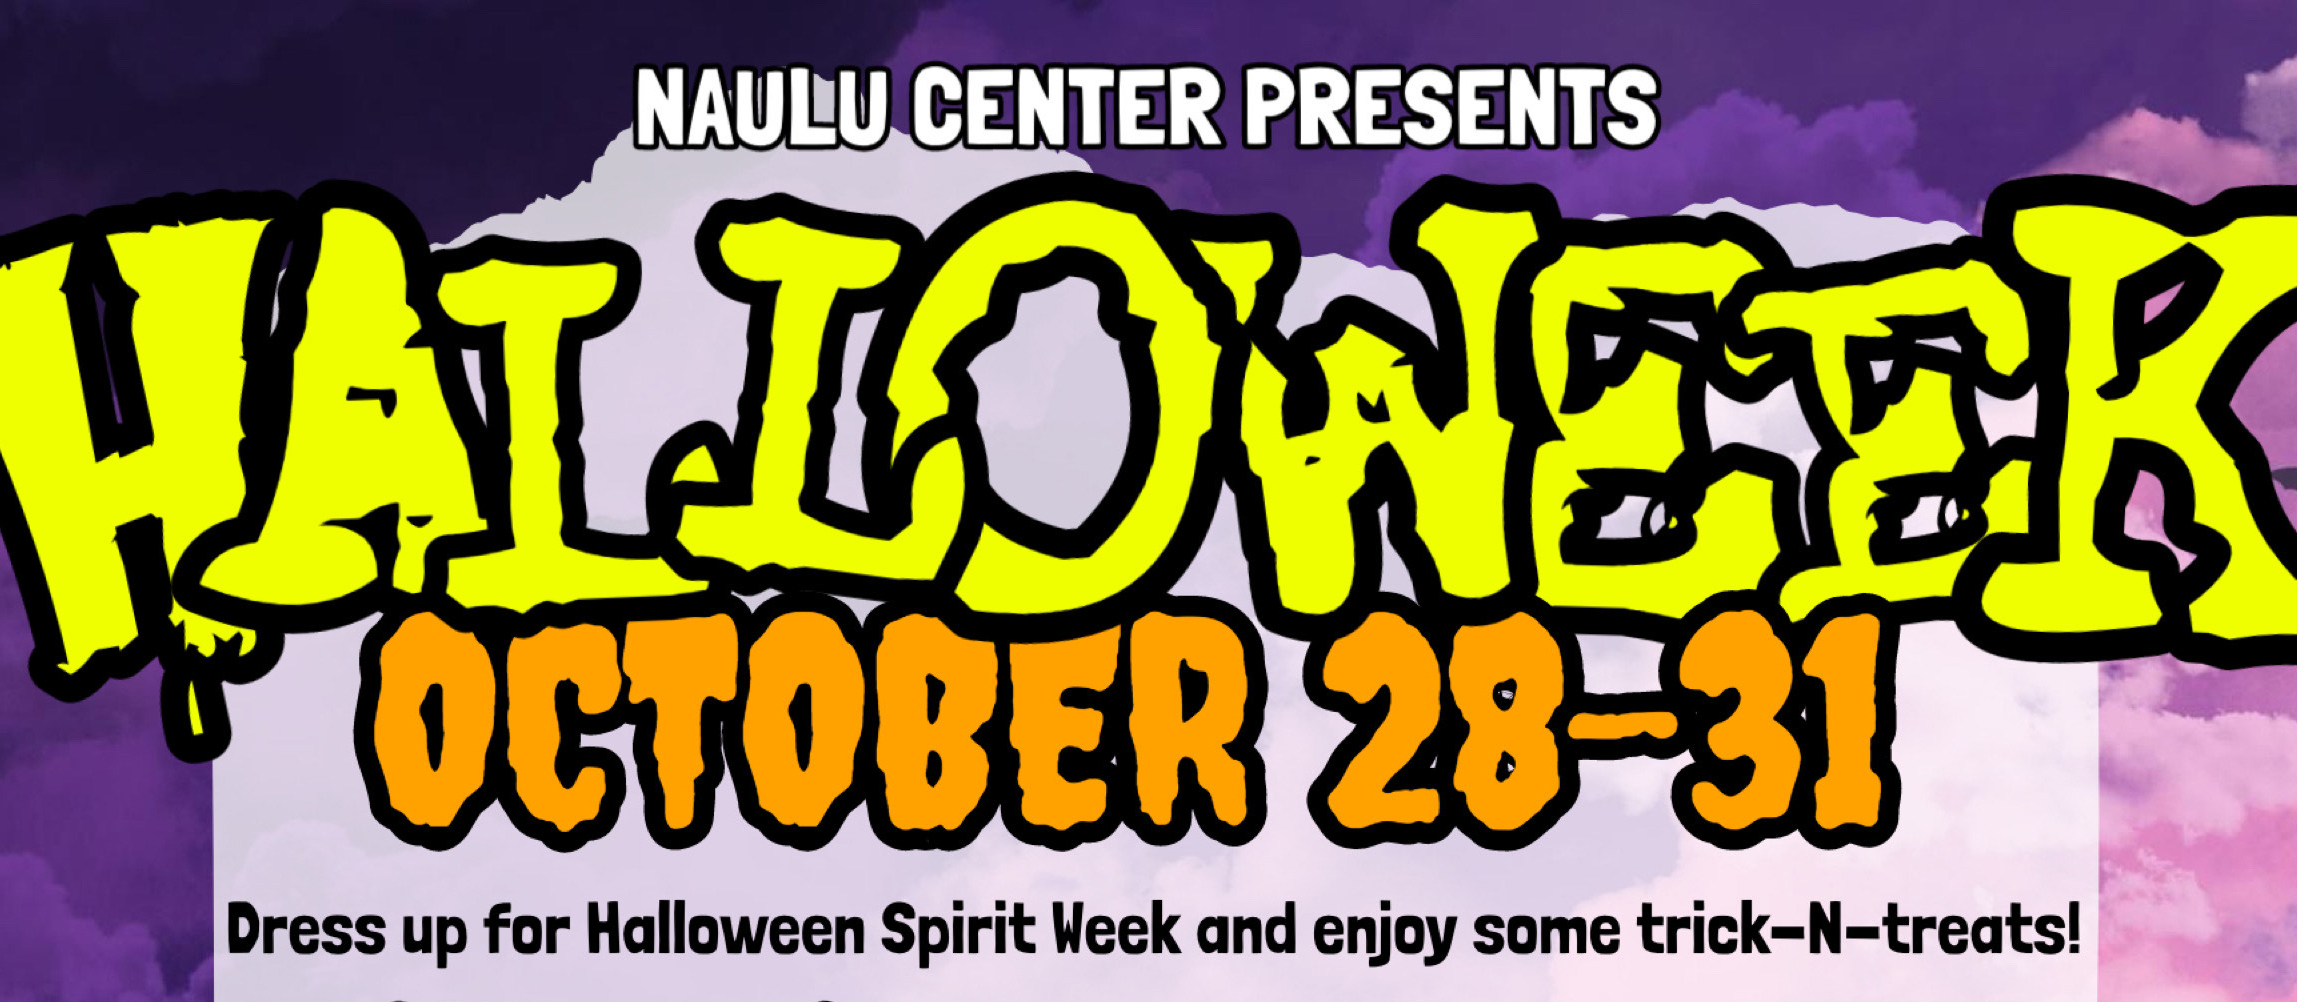 Top of flyer for Halloweek